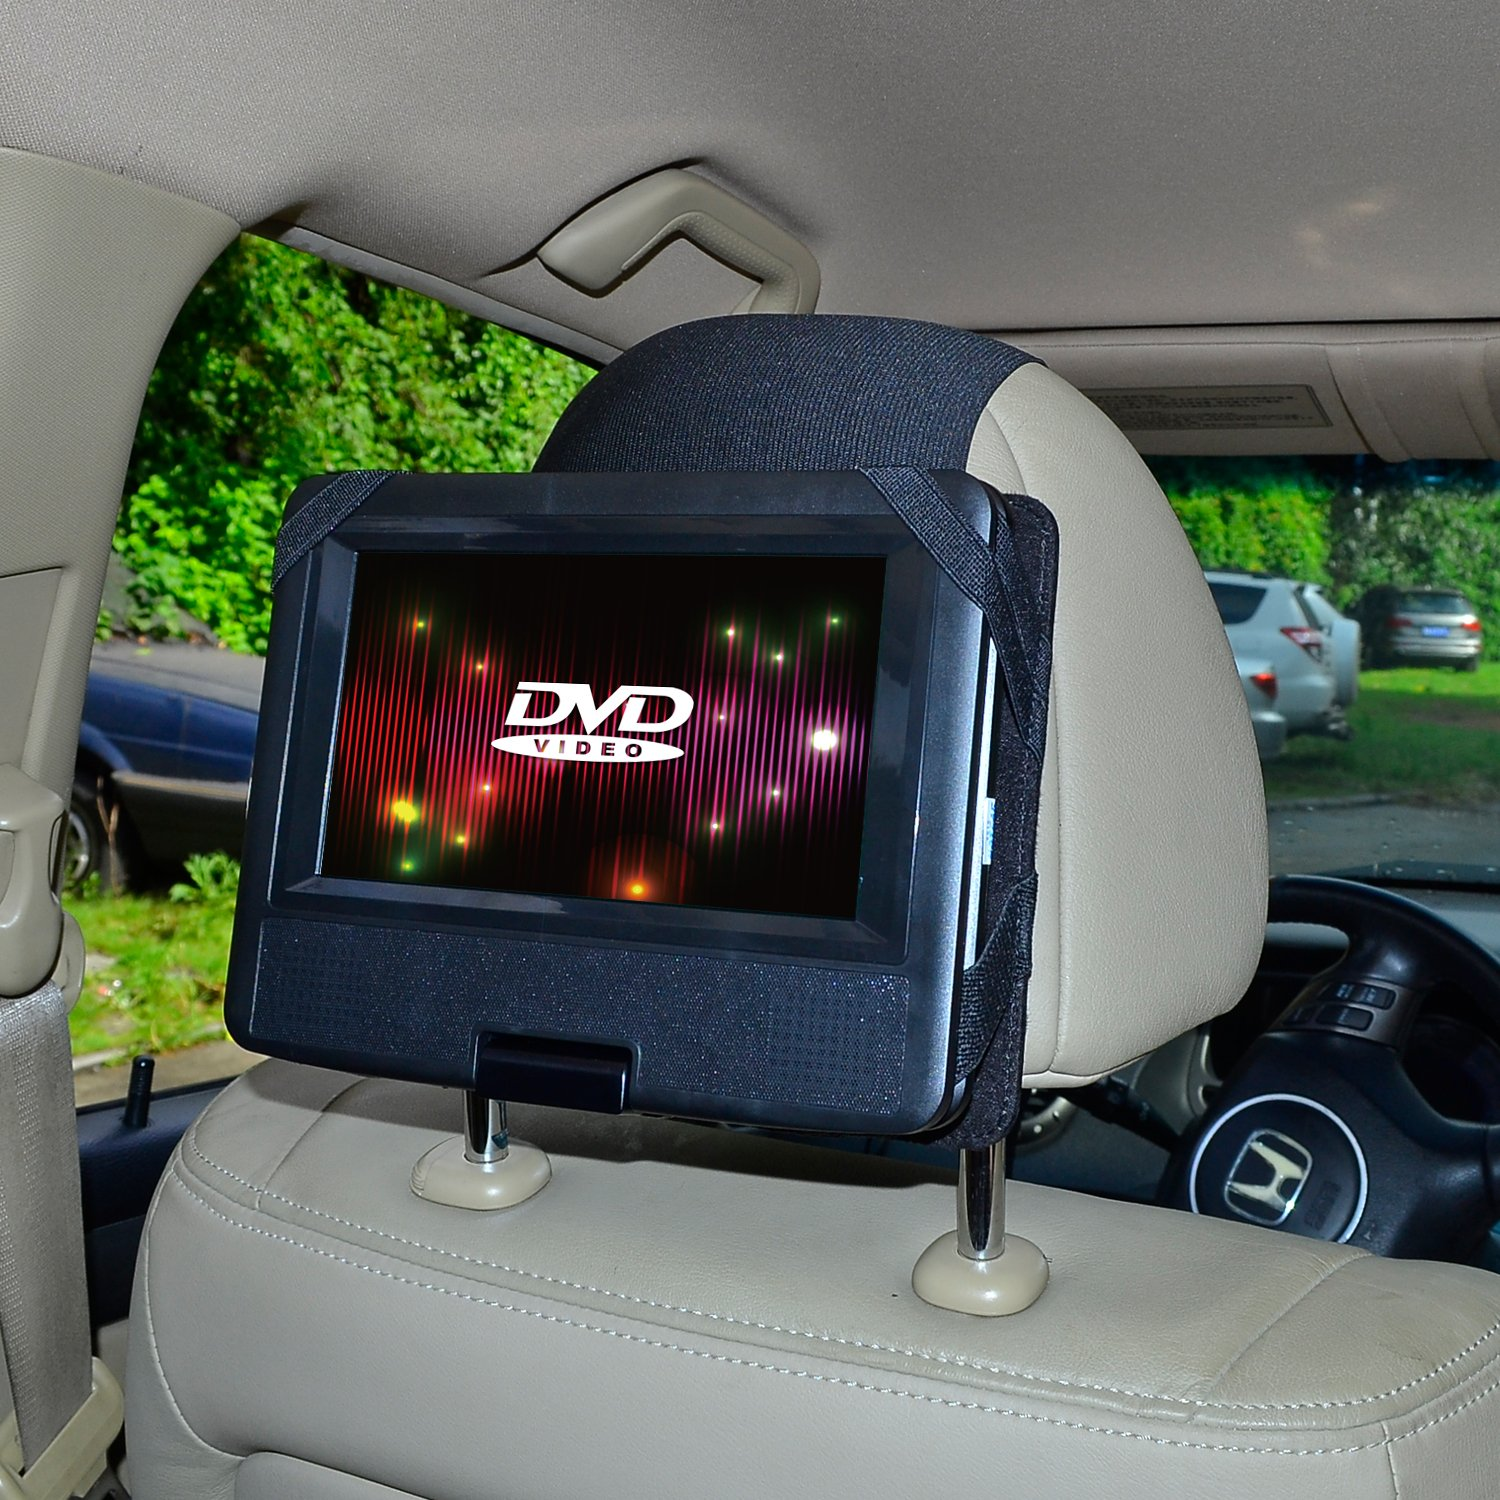 TFY Car Headrest Mount for Swivel & Flip DVD Player-7 Inch (CANNOT fit the Sylvania SDVD7027 7-Inch Portable DVD Player)